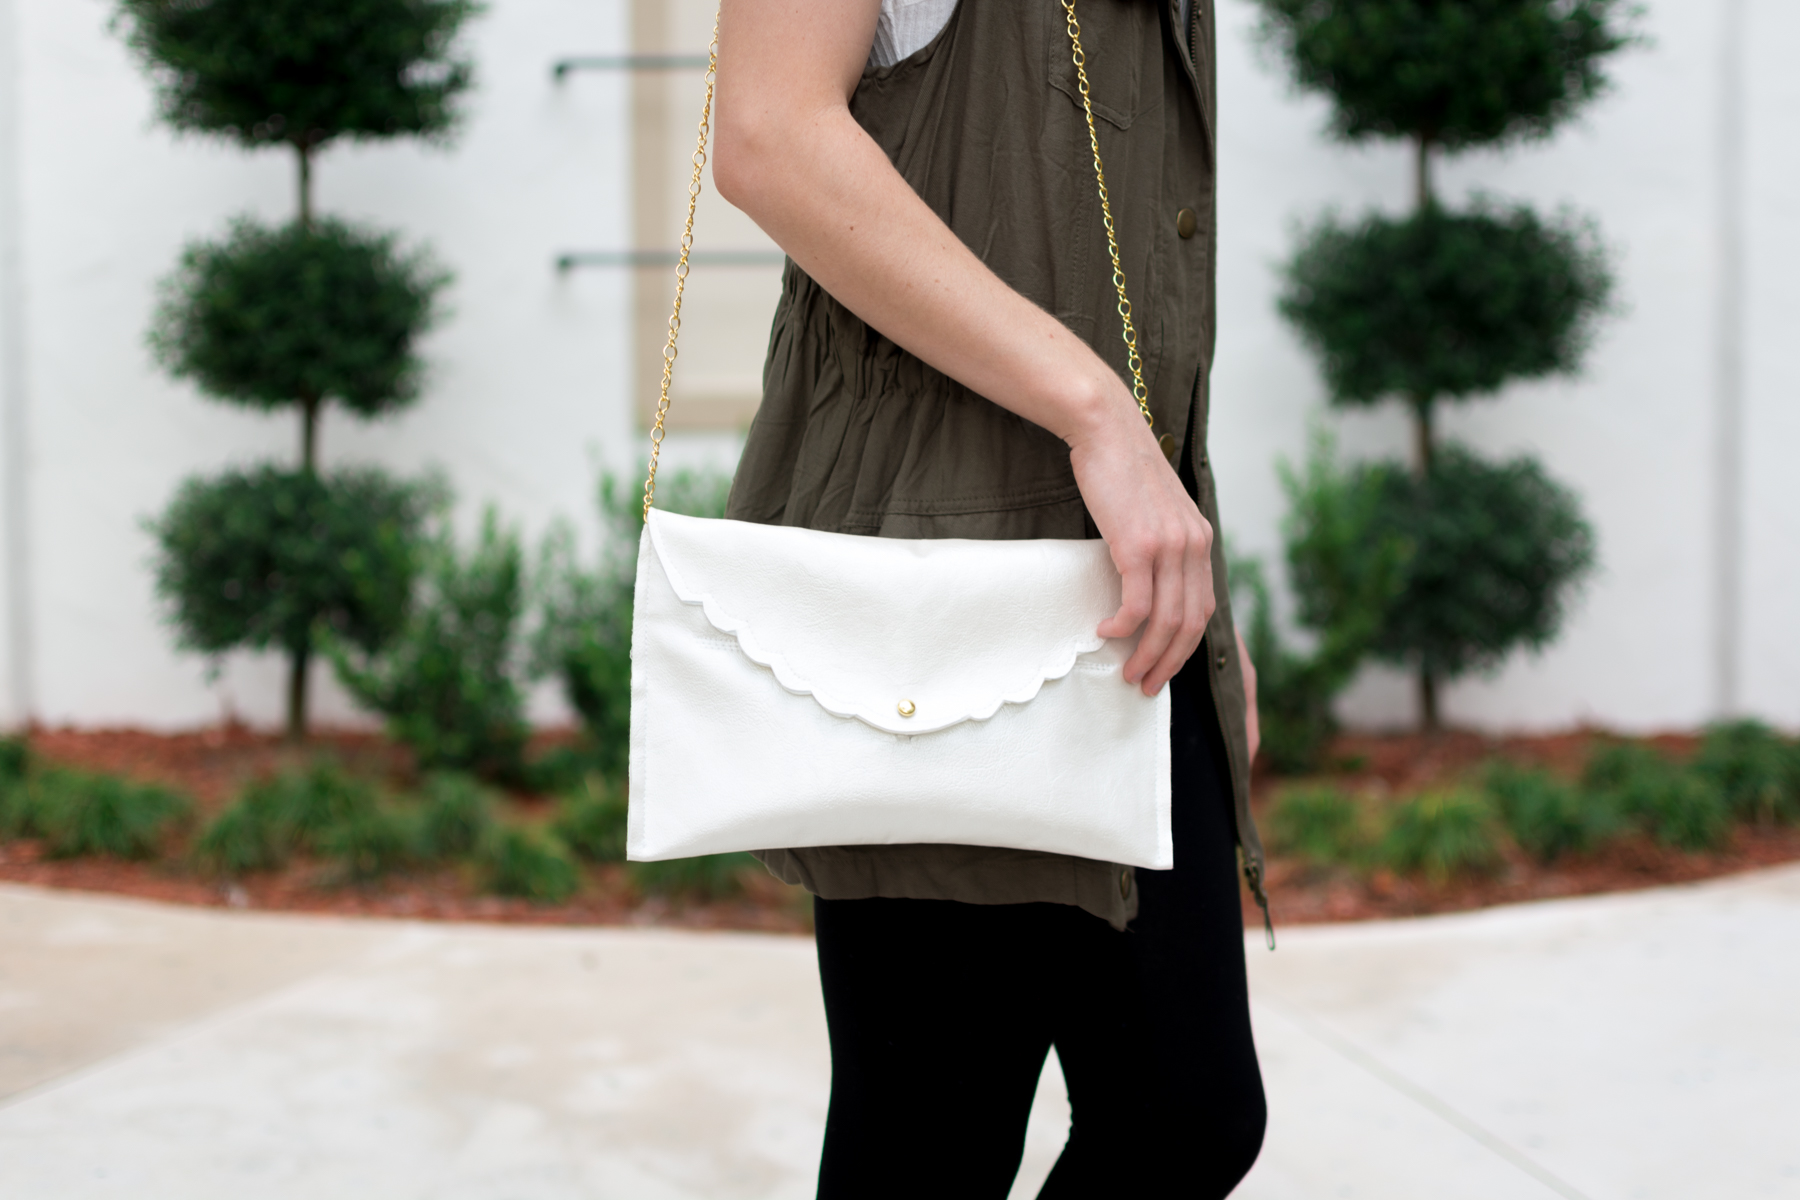 DIY Scallop Purse by Jenny Bess at Sweet Teal